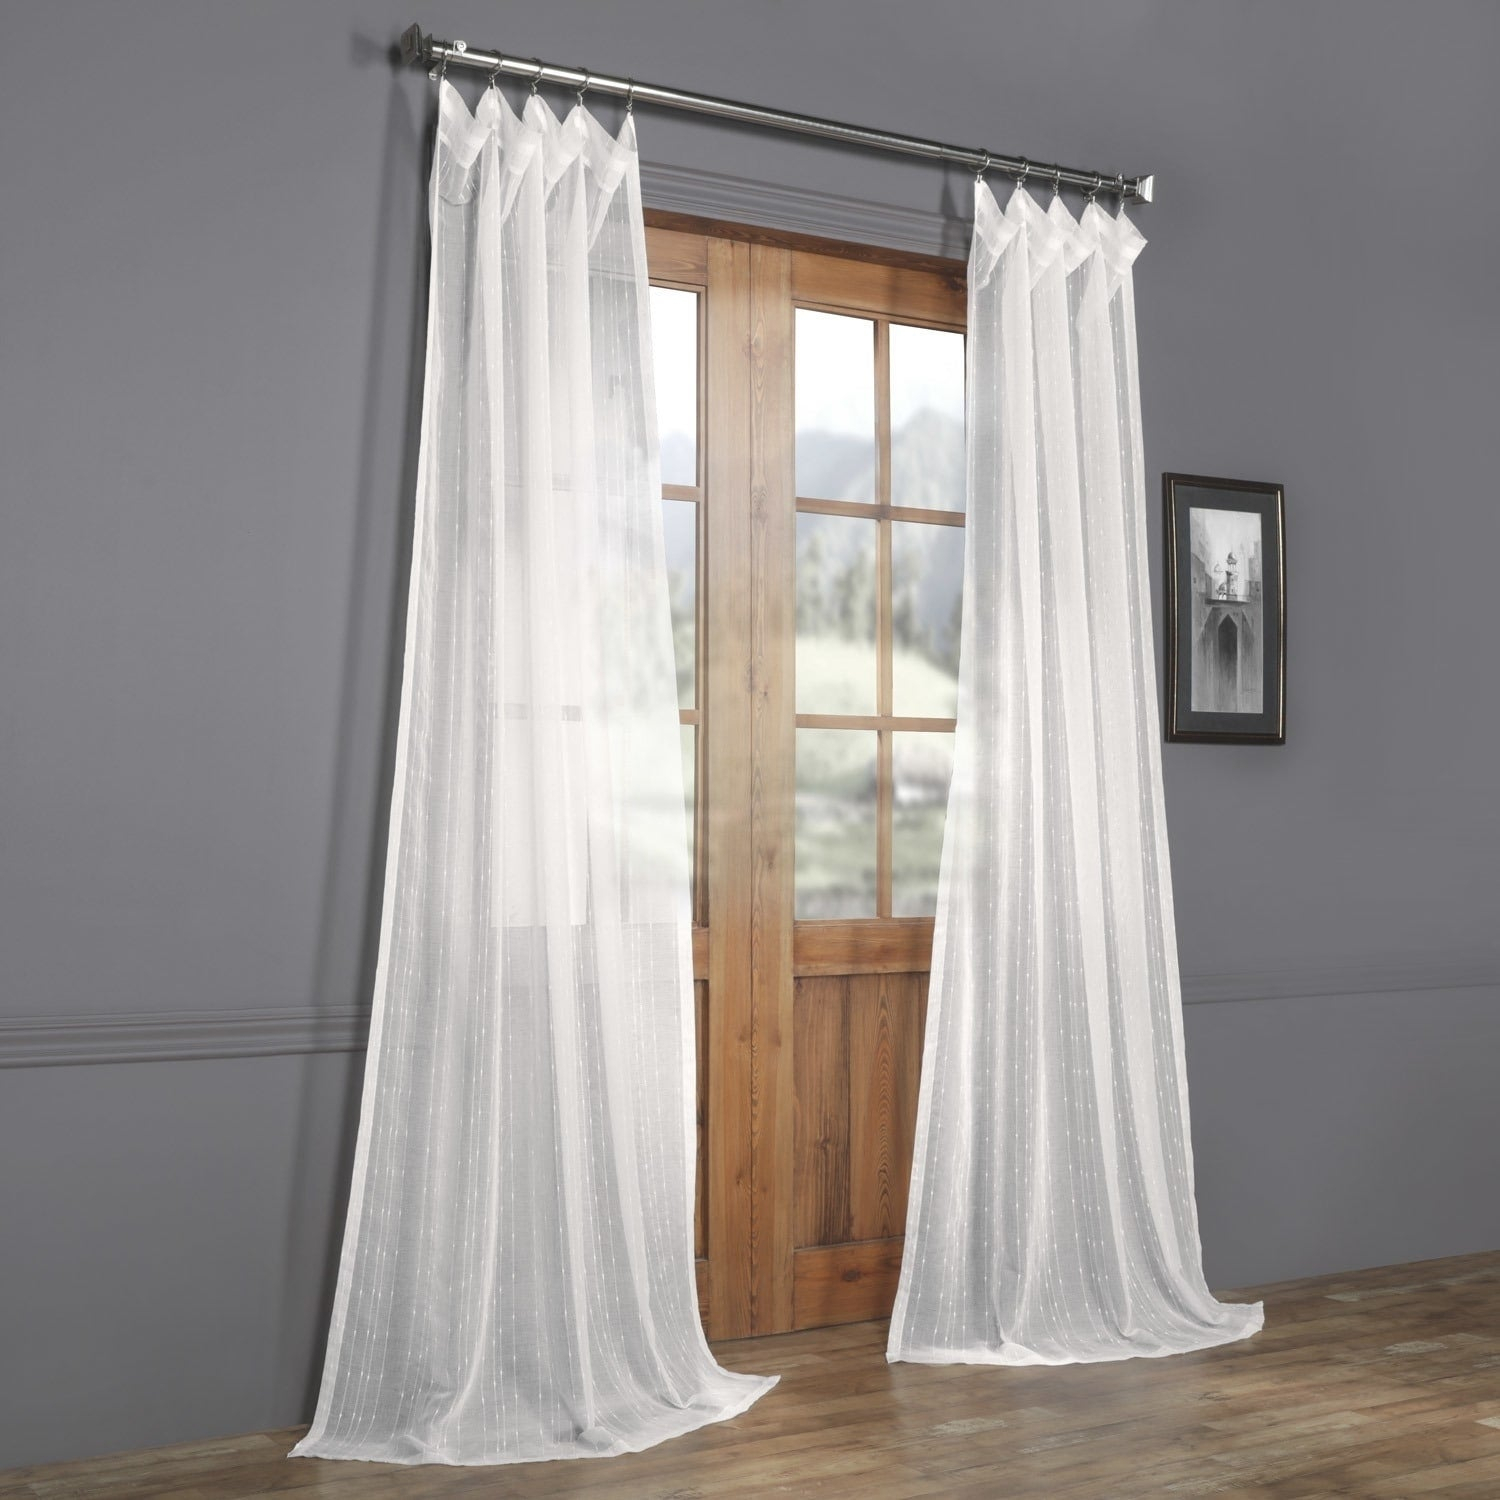 Exclusive Fabrics Montpellier Striped Linen Sheer Curtain Inside Montpellier Striped Linen Sheer Curtains (View 2 of 20)